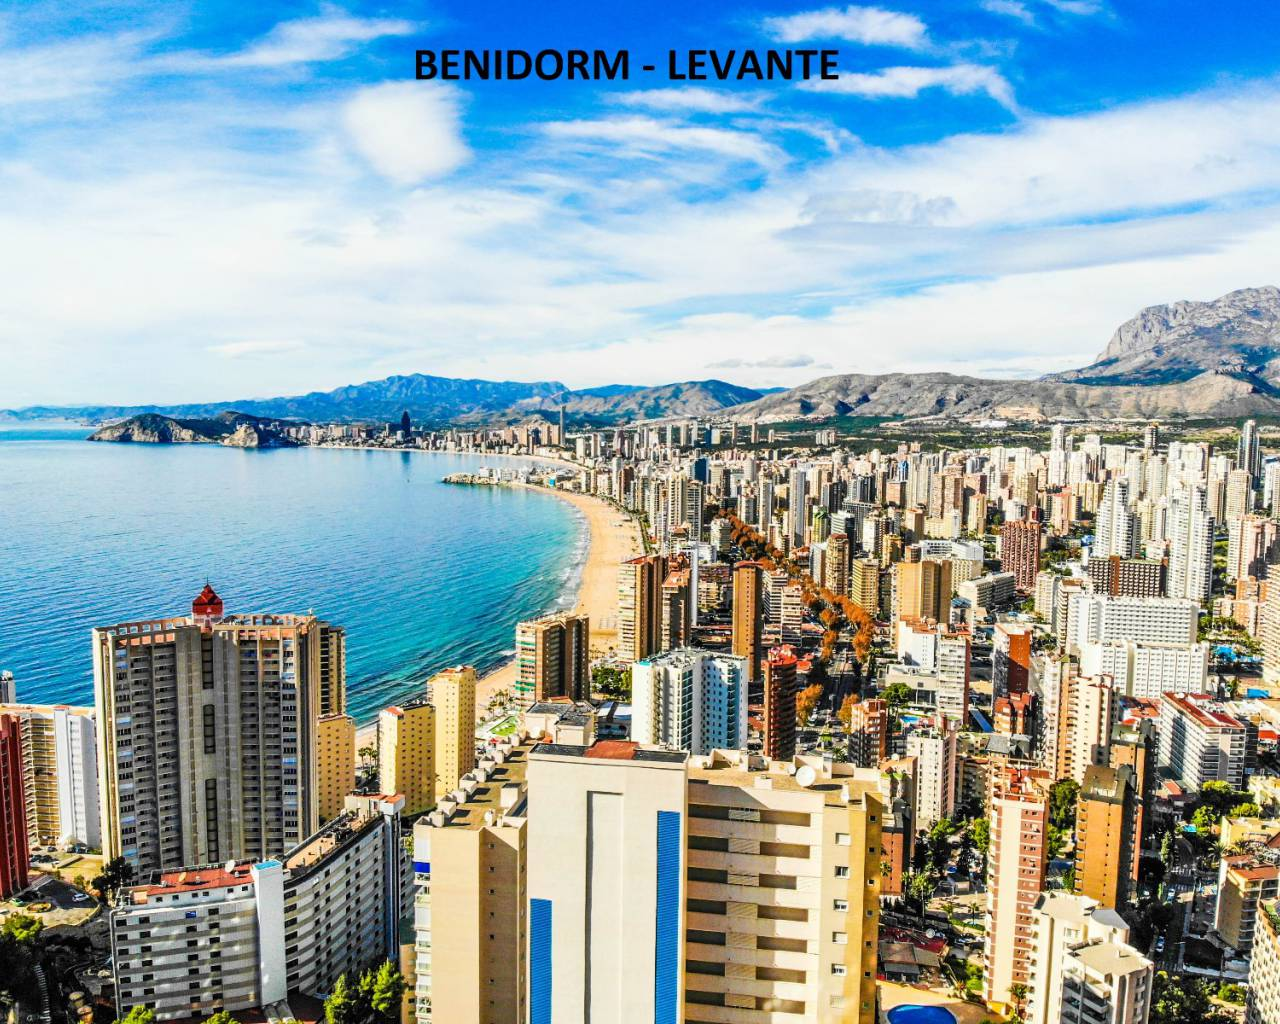 Appartement - Vente - Benidorm - Levante